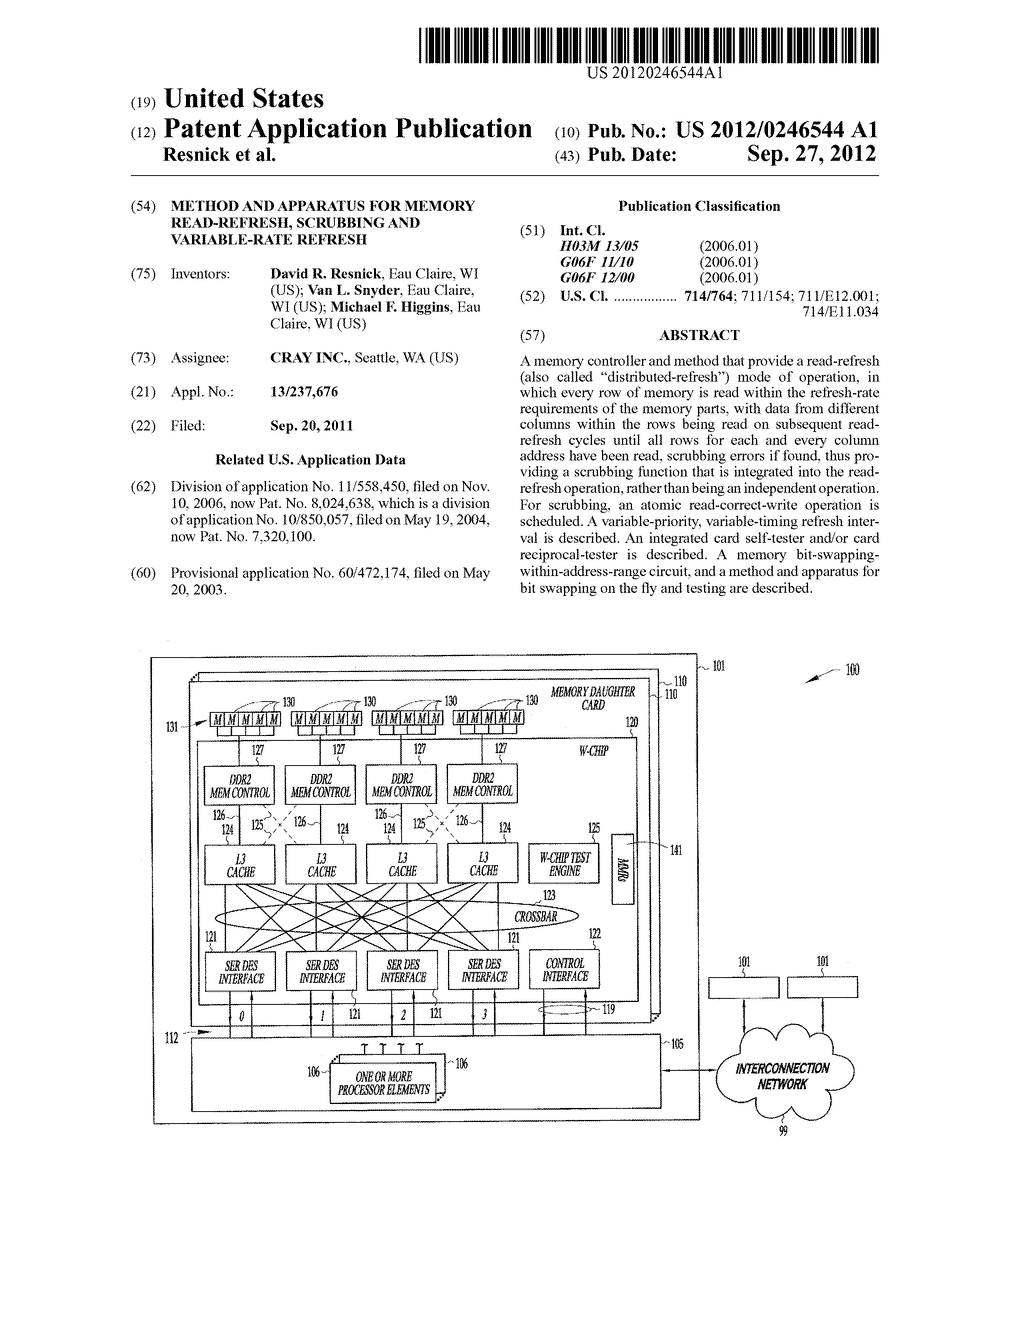 METHOD AND APPARATUS FOR MEMORY READ-REFRESH, SCRUBBING AND VARIABLE-RATE     REFRESH - diagram, schematic, and image 01